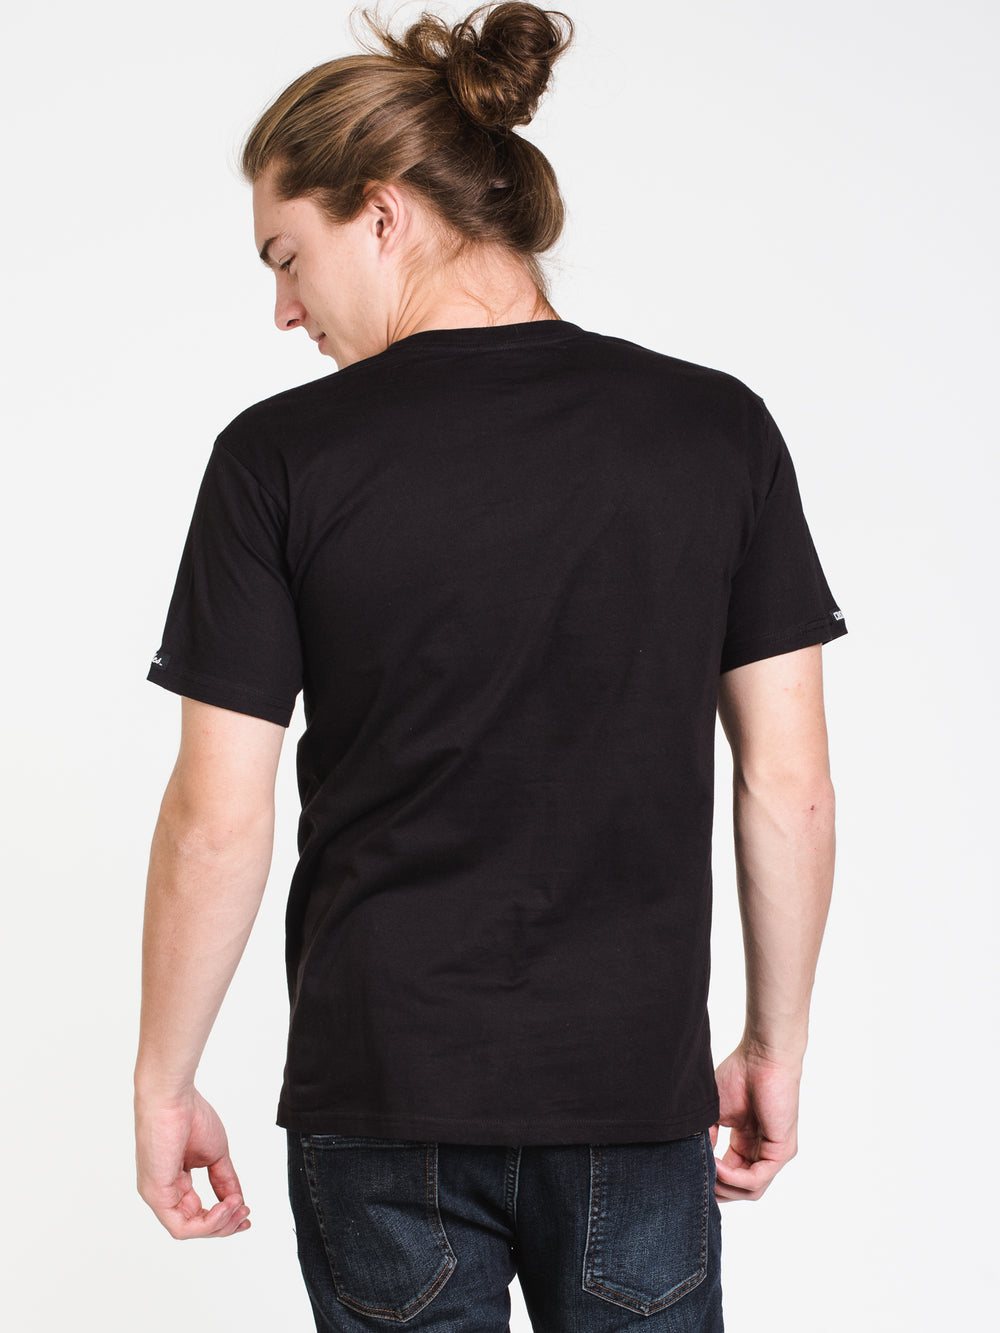 MENS TIMELESS SHORT SLEEVE T-SHIRT - BLACK